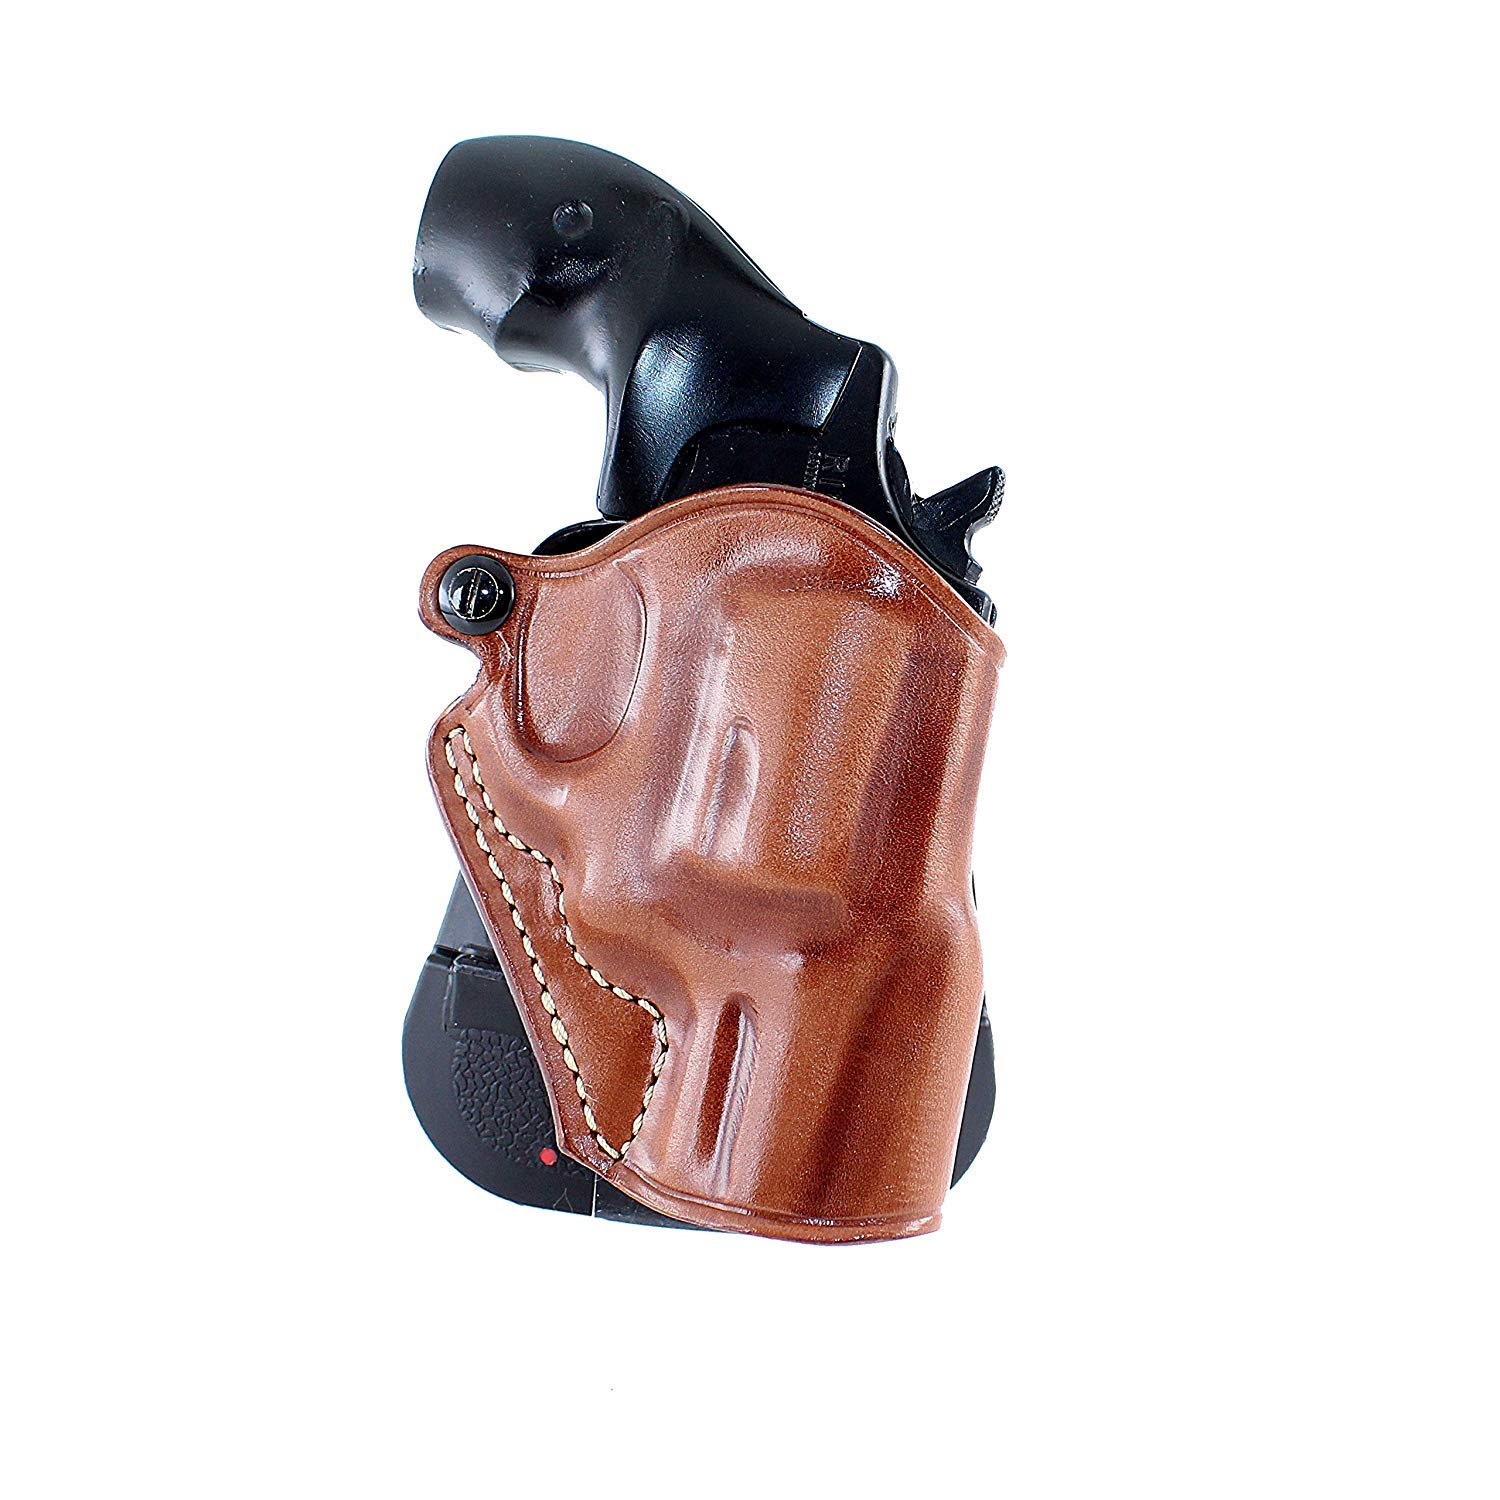 Premium Leather OWB Paddle Holster Open Top Fits Taurus 605 Poly Protector 357 Mag 2''BBL, Right Hand Draw, Brown Color #1421#